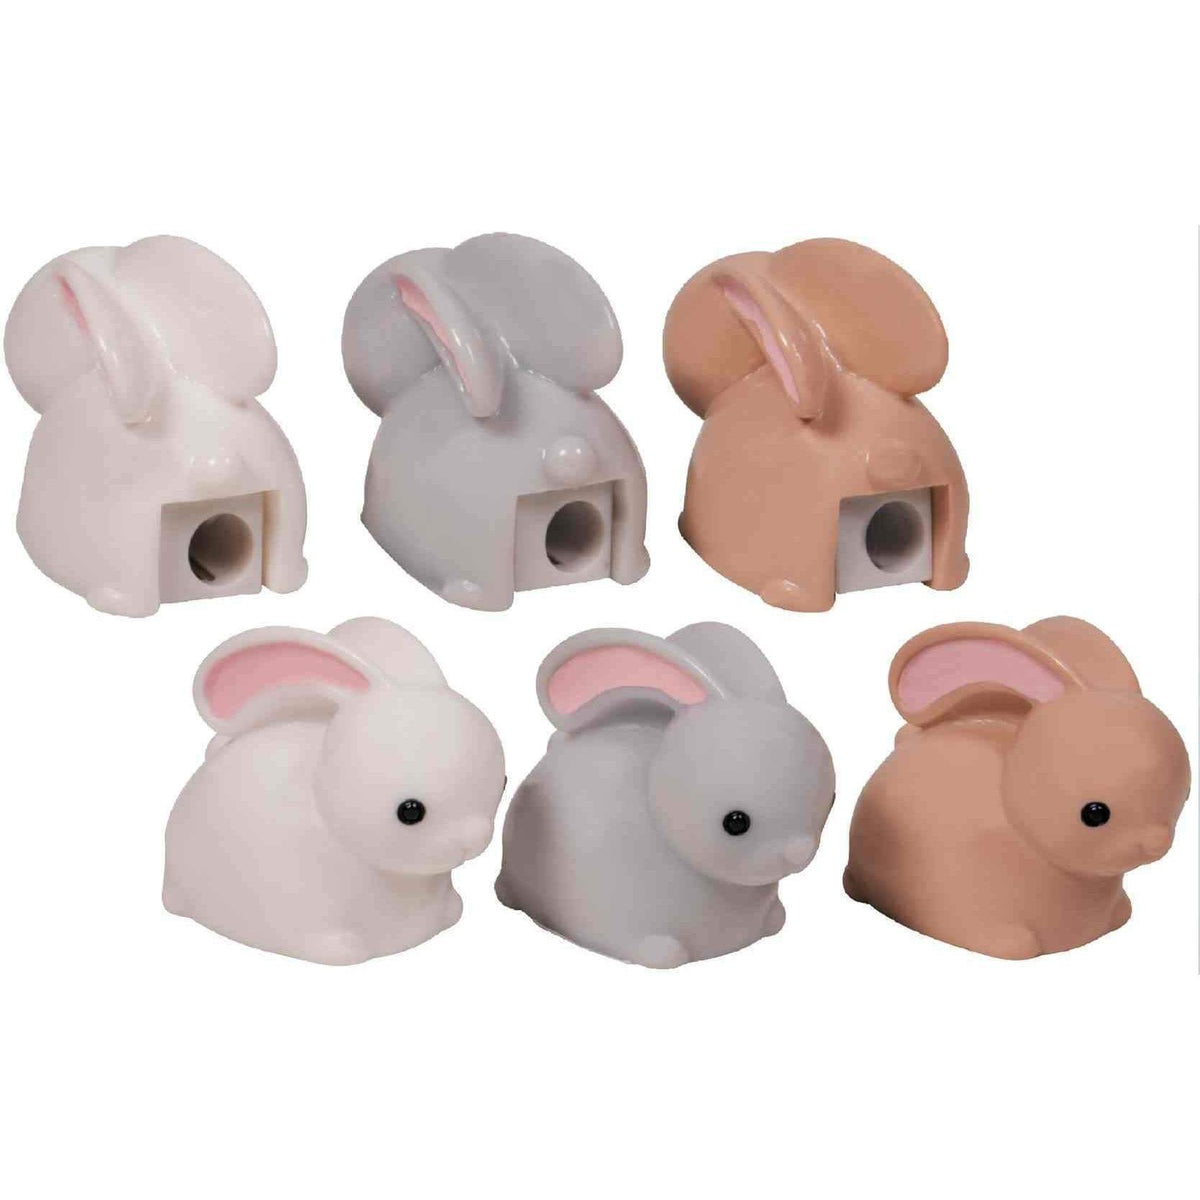 Bunny Pencil Sharpeners - Set of 3